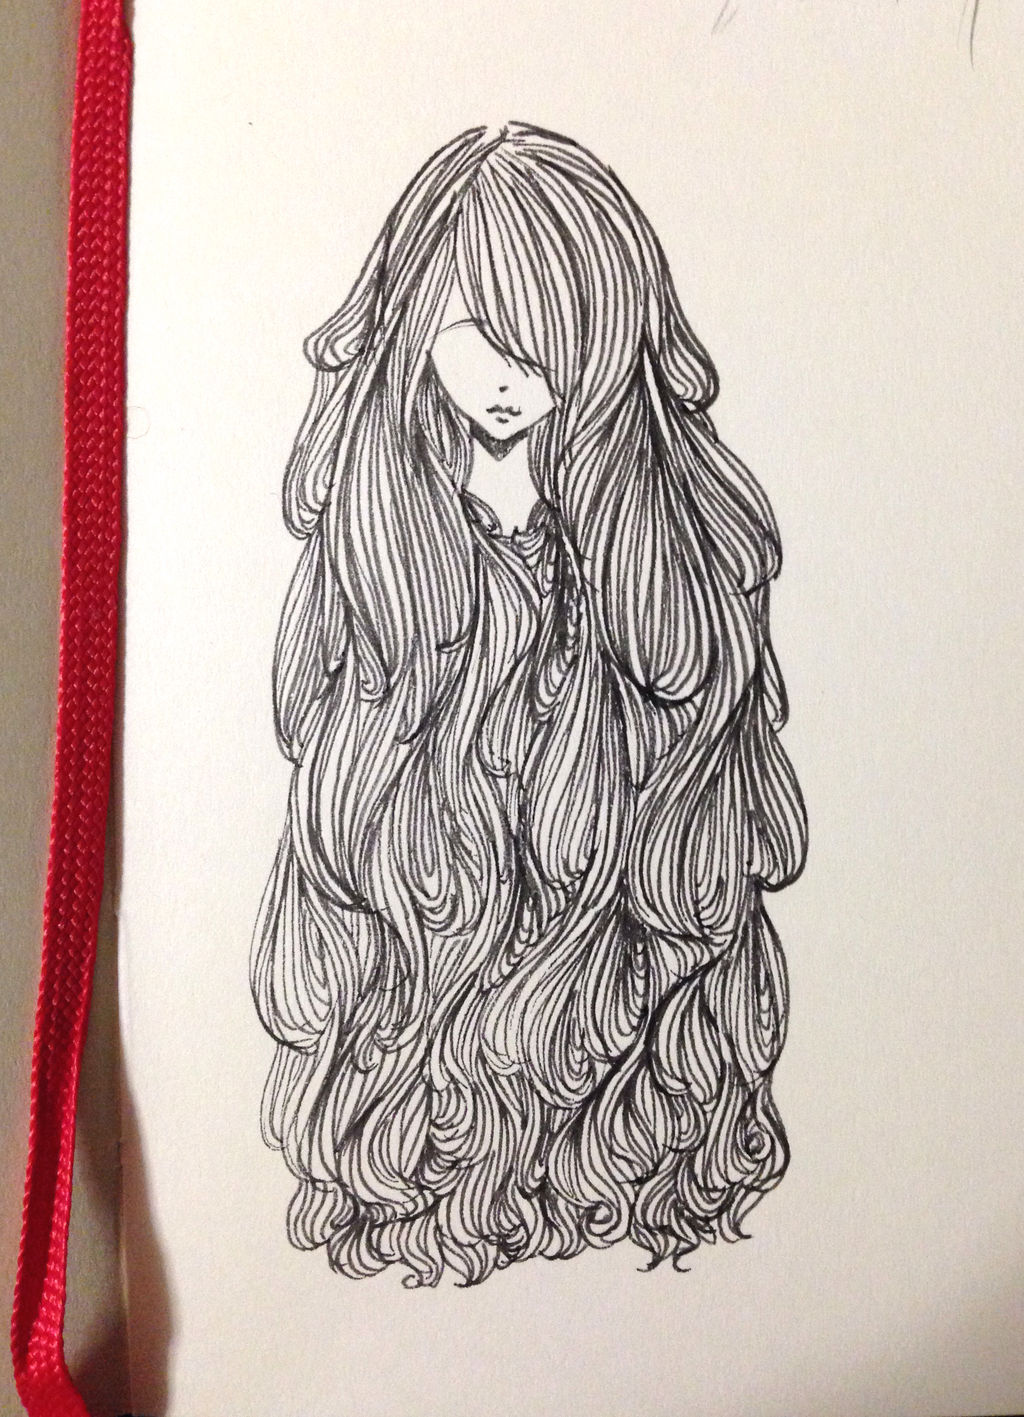 Hair Doodle by CrystalShadow35